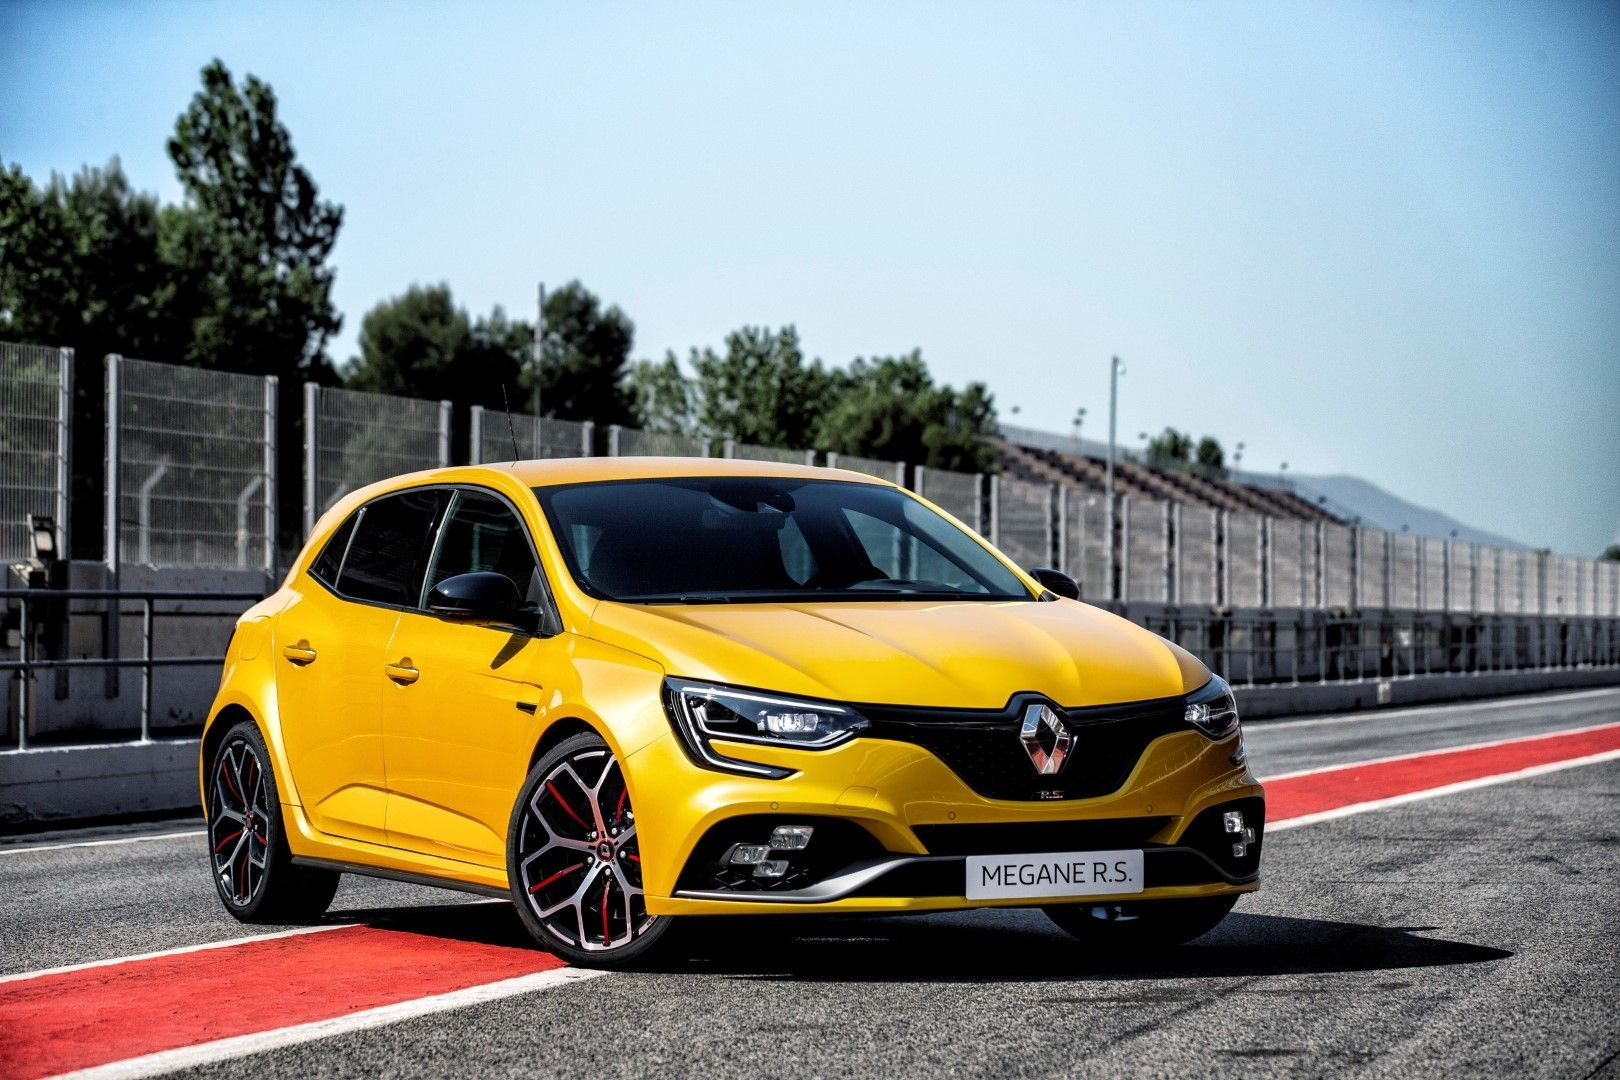 2018 Renault Megane R S Trophy Brand New 1 8 Litre Turbo Engine 300hp And Torque Of 420nm 295 Or 310 Lb Ft Renault Megane New Renault Renault